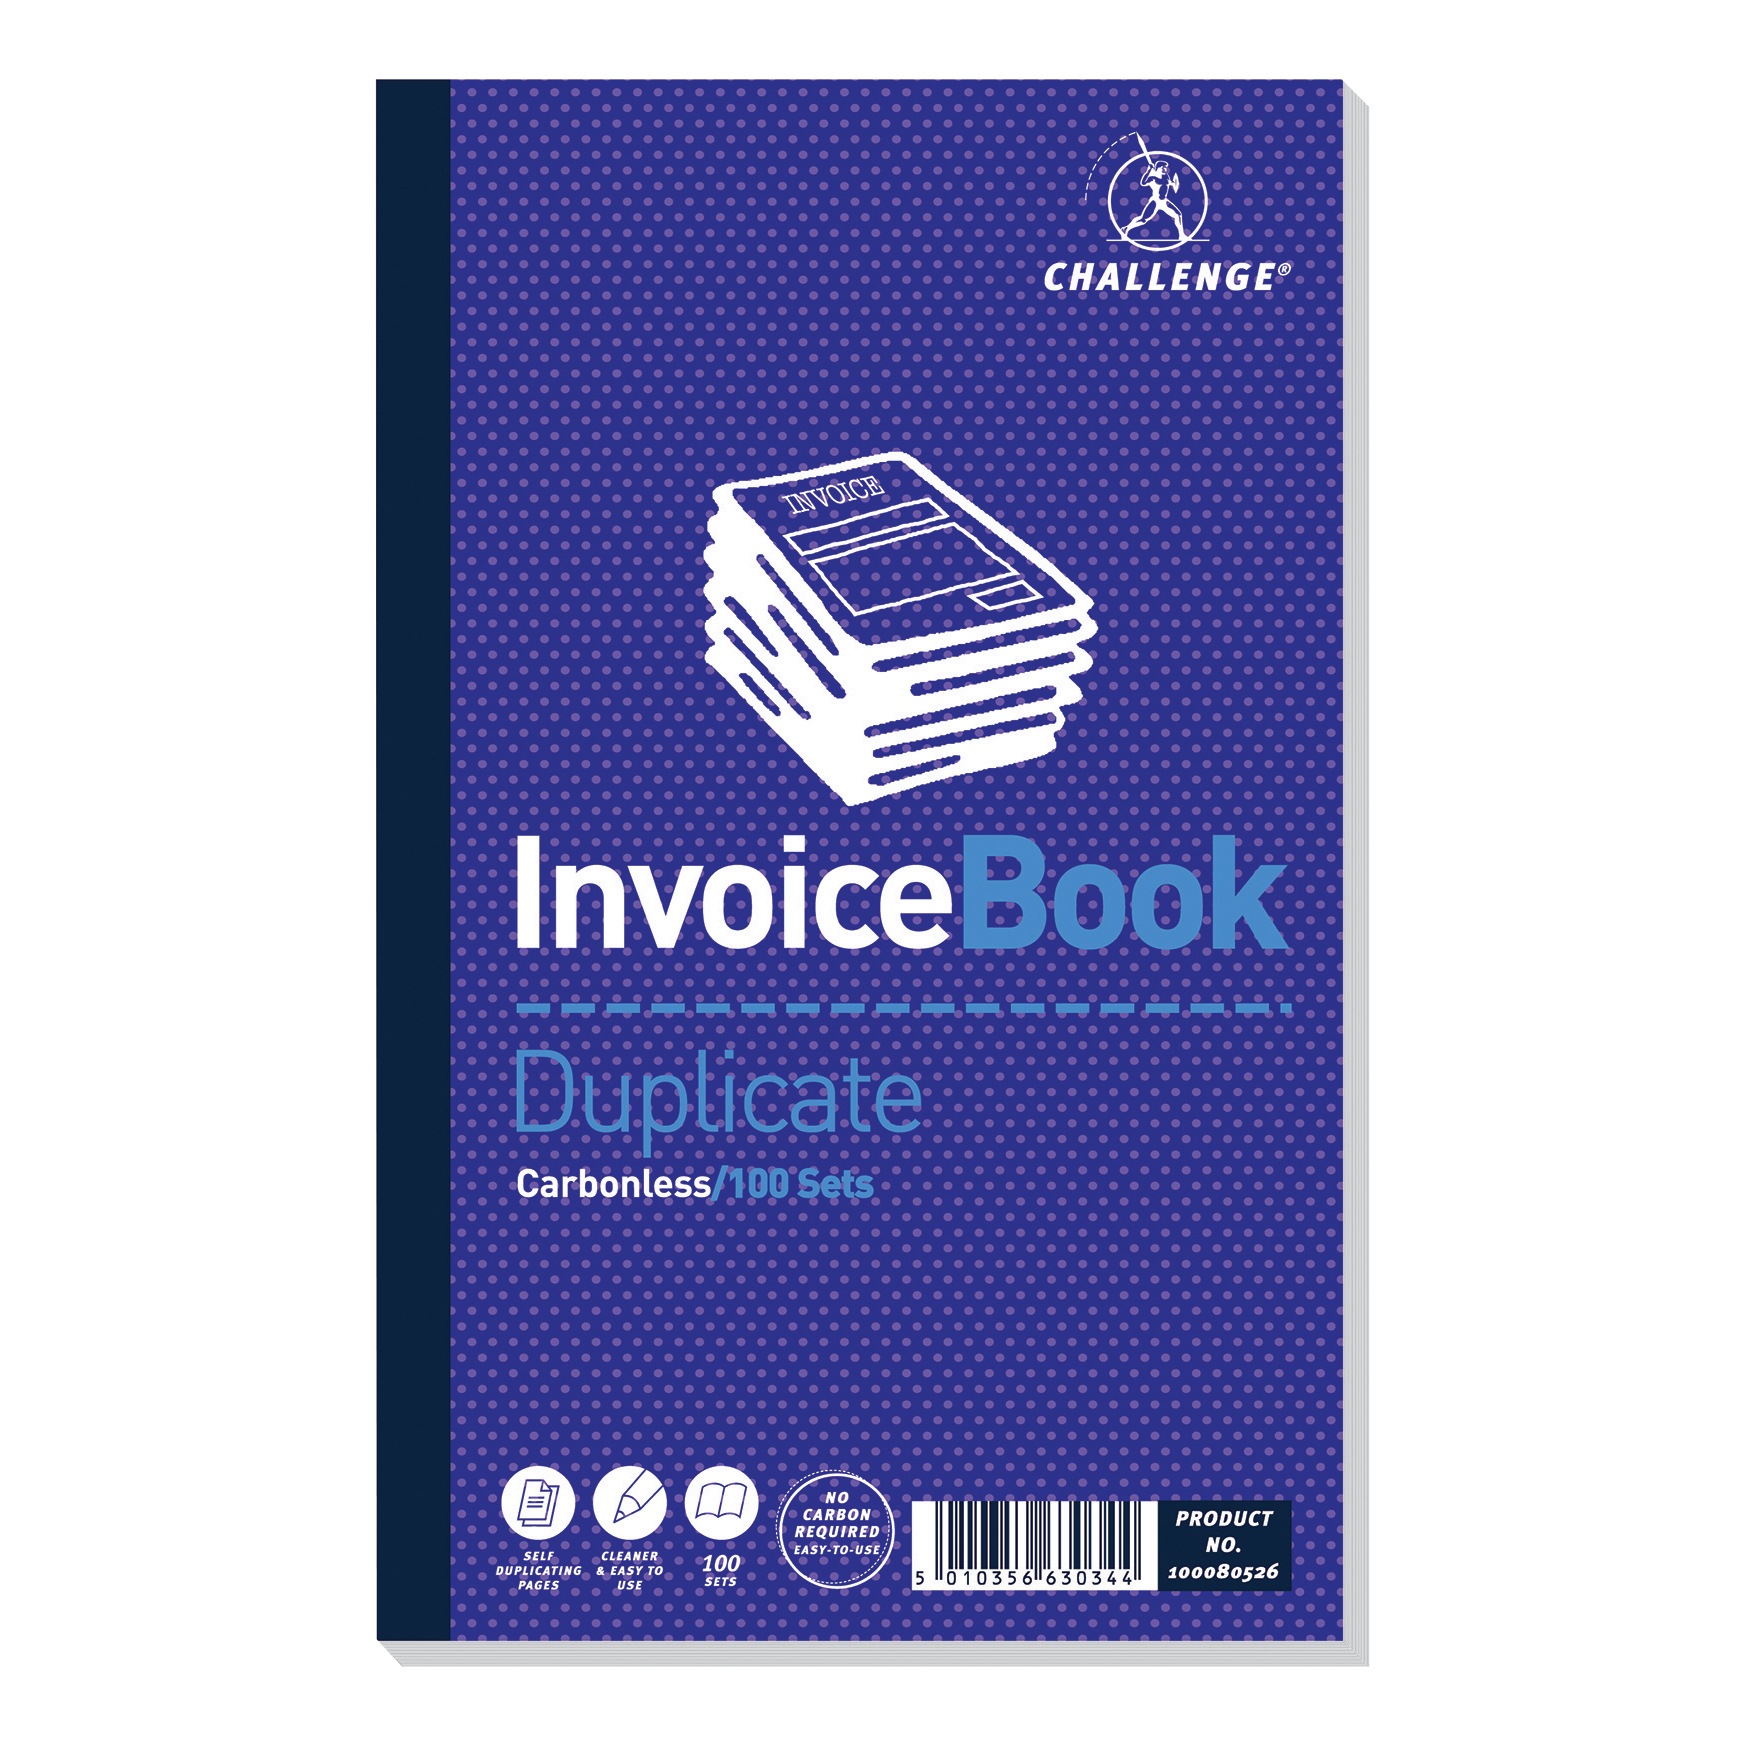 Duplicate Challenge Duplicate Book Carbonless Invoice without VAT/tax 100 Sets 210x130mm Ref 100080526 [Pack 5]